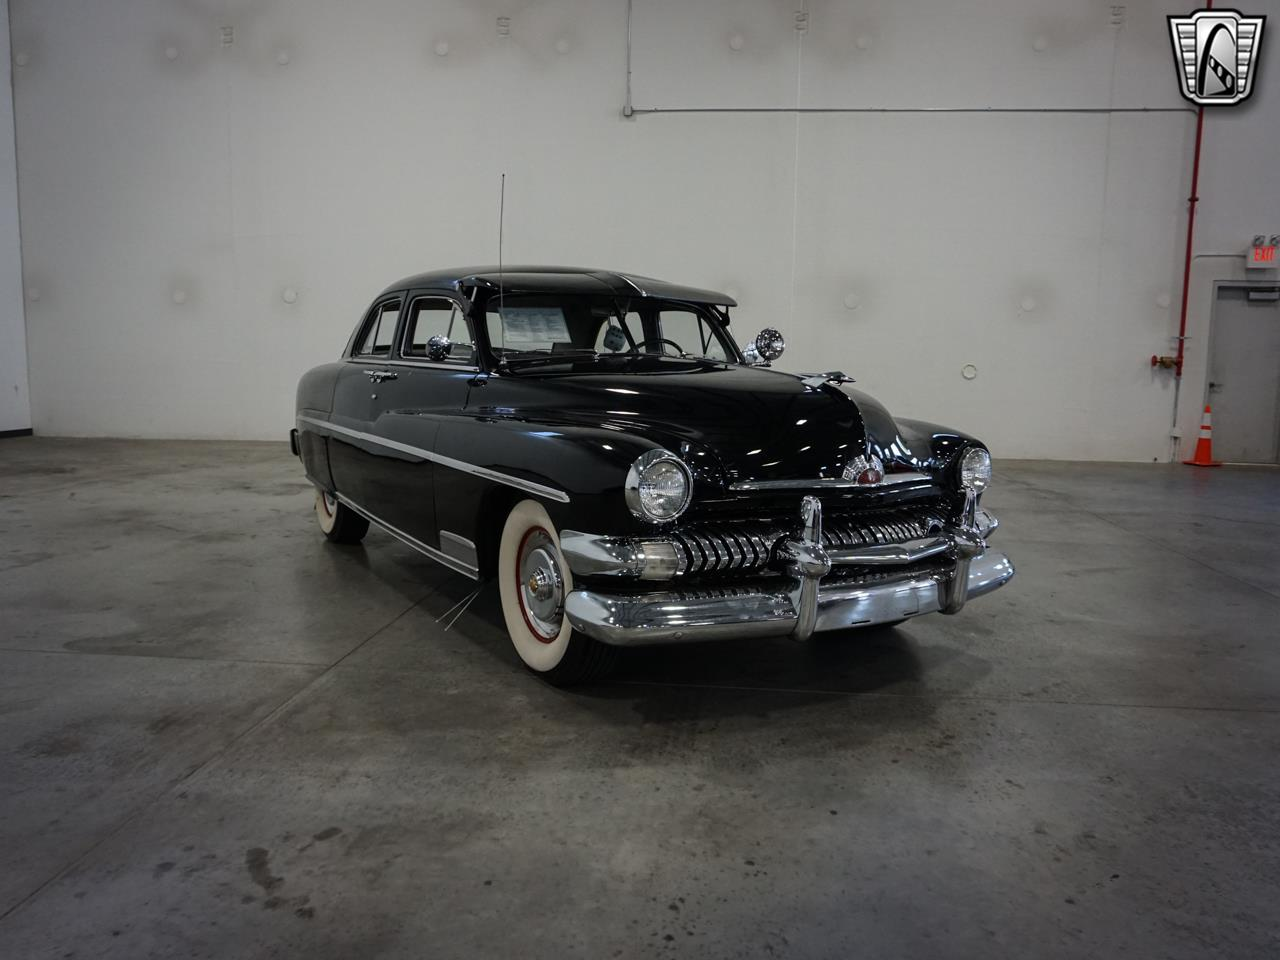 1951 Mercury Sedan (CC-1351544) for sale in O'Fallon, Illinois